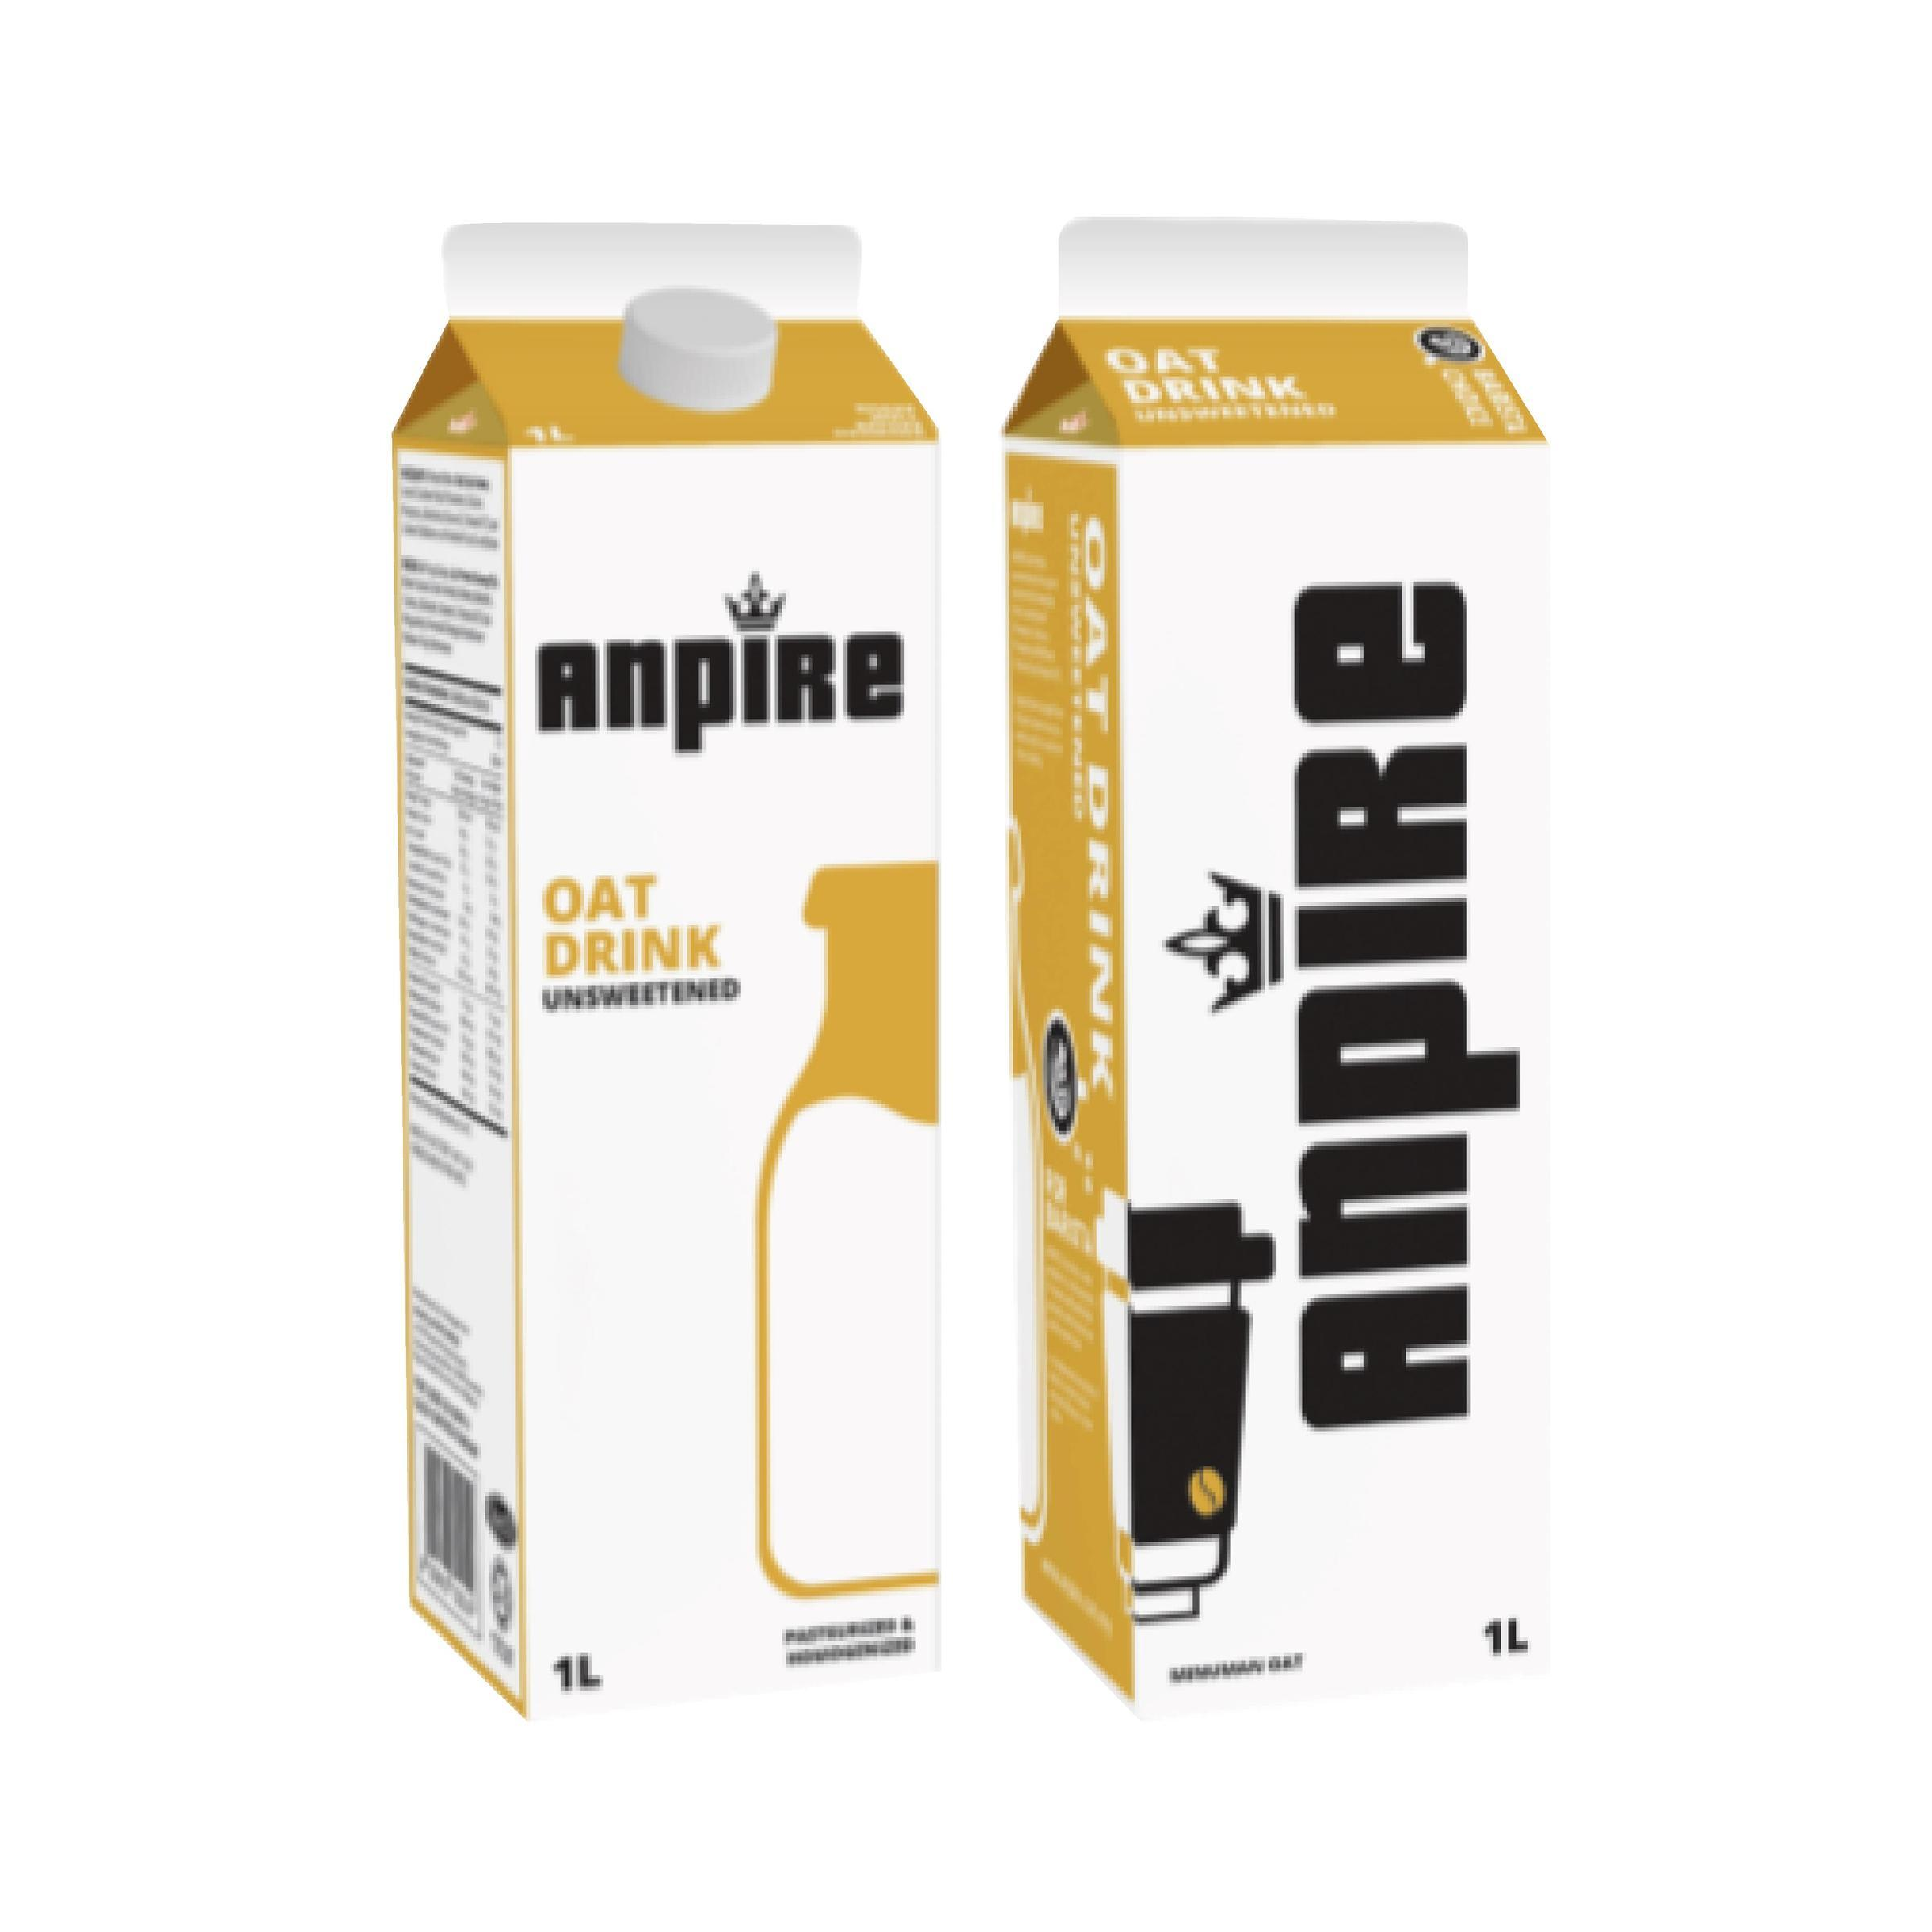 Anpire-Dairy Free Unsweetened Oat Drink (1L) *(Outstation N/A; 外州送不到)